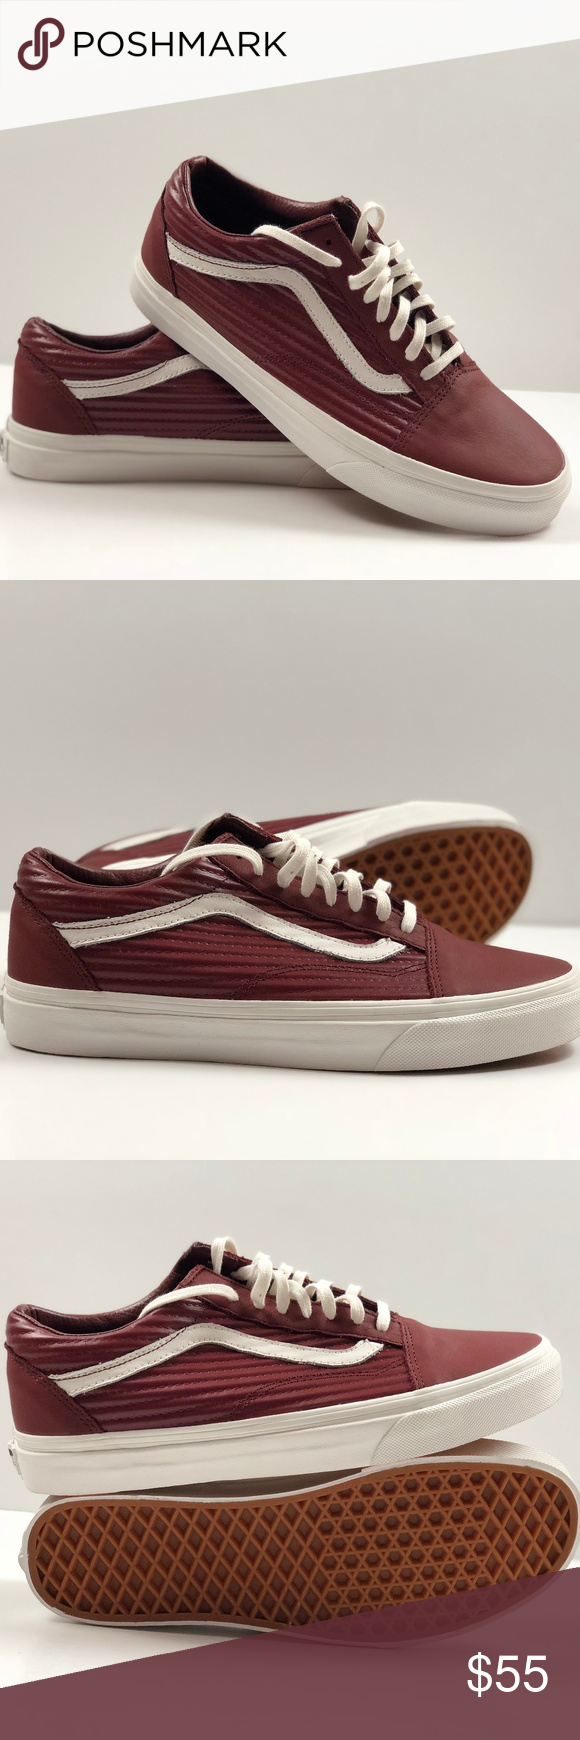 0cd77d019052 Vans Old Skool Moto Leather Madder Brown Blanc De Blanc Skate Shoes.  Condition  New with box. Size  Women s 9.5